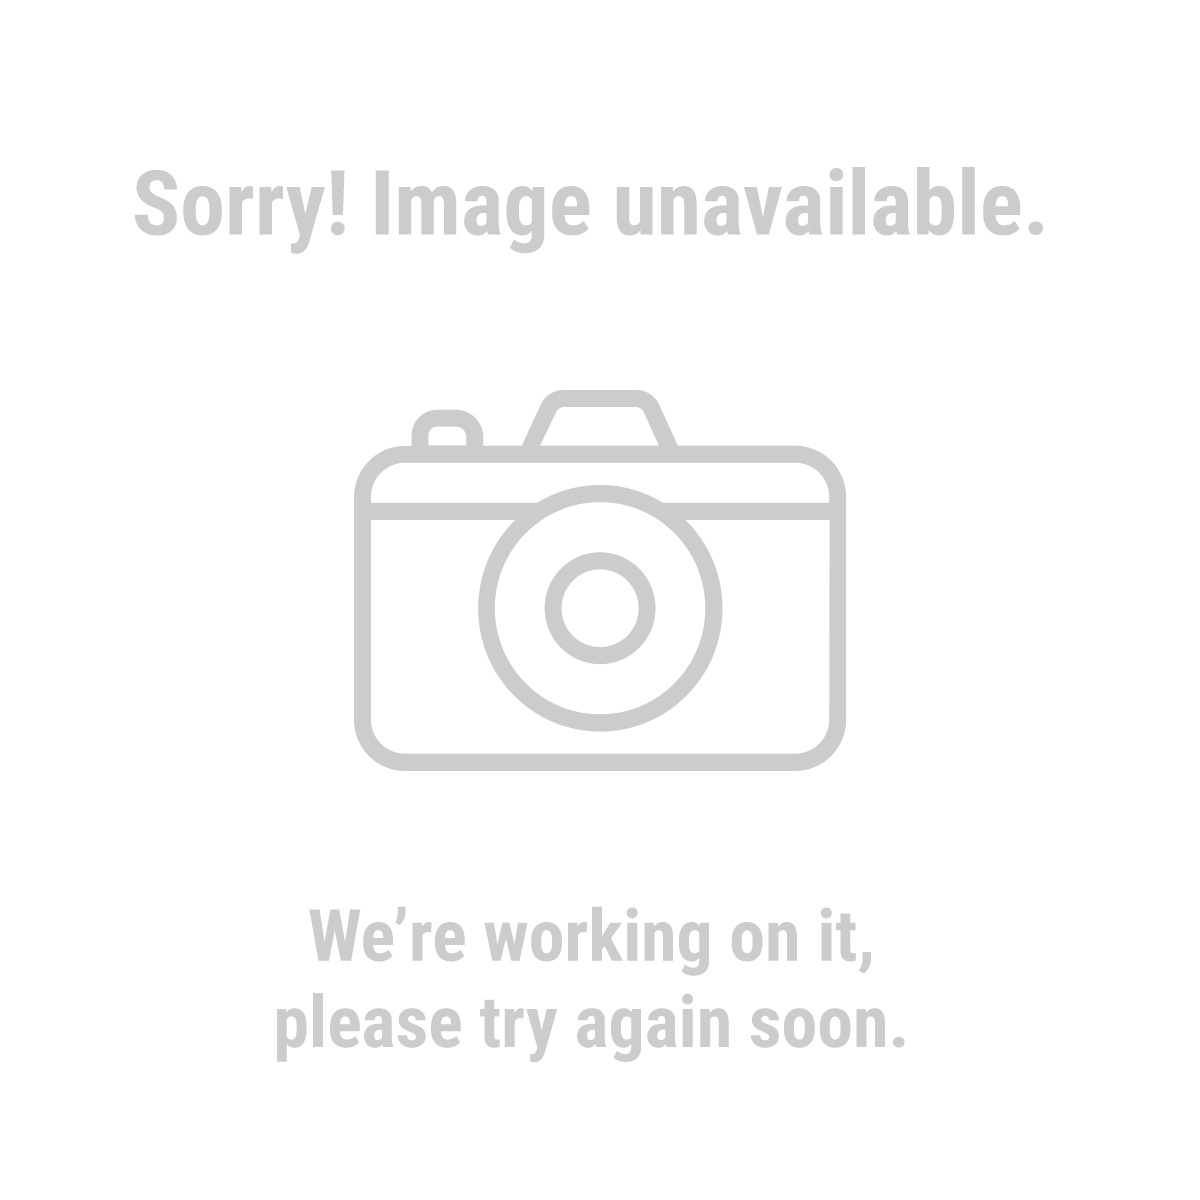 Warrior® 68457 100 Piece Security Bit Set